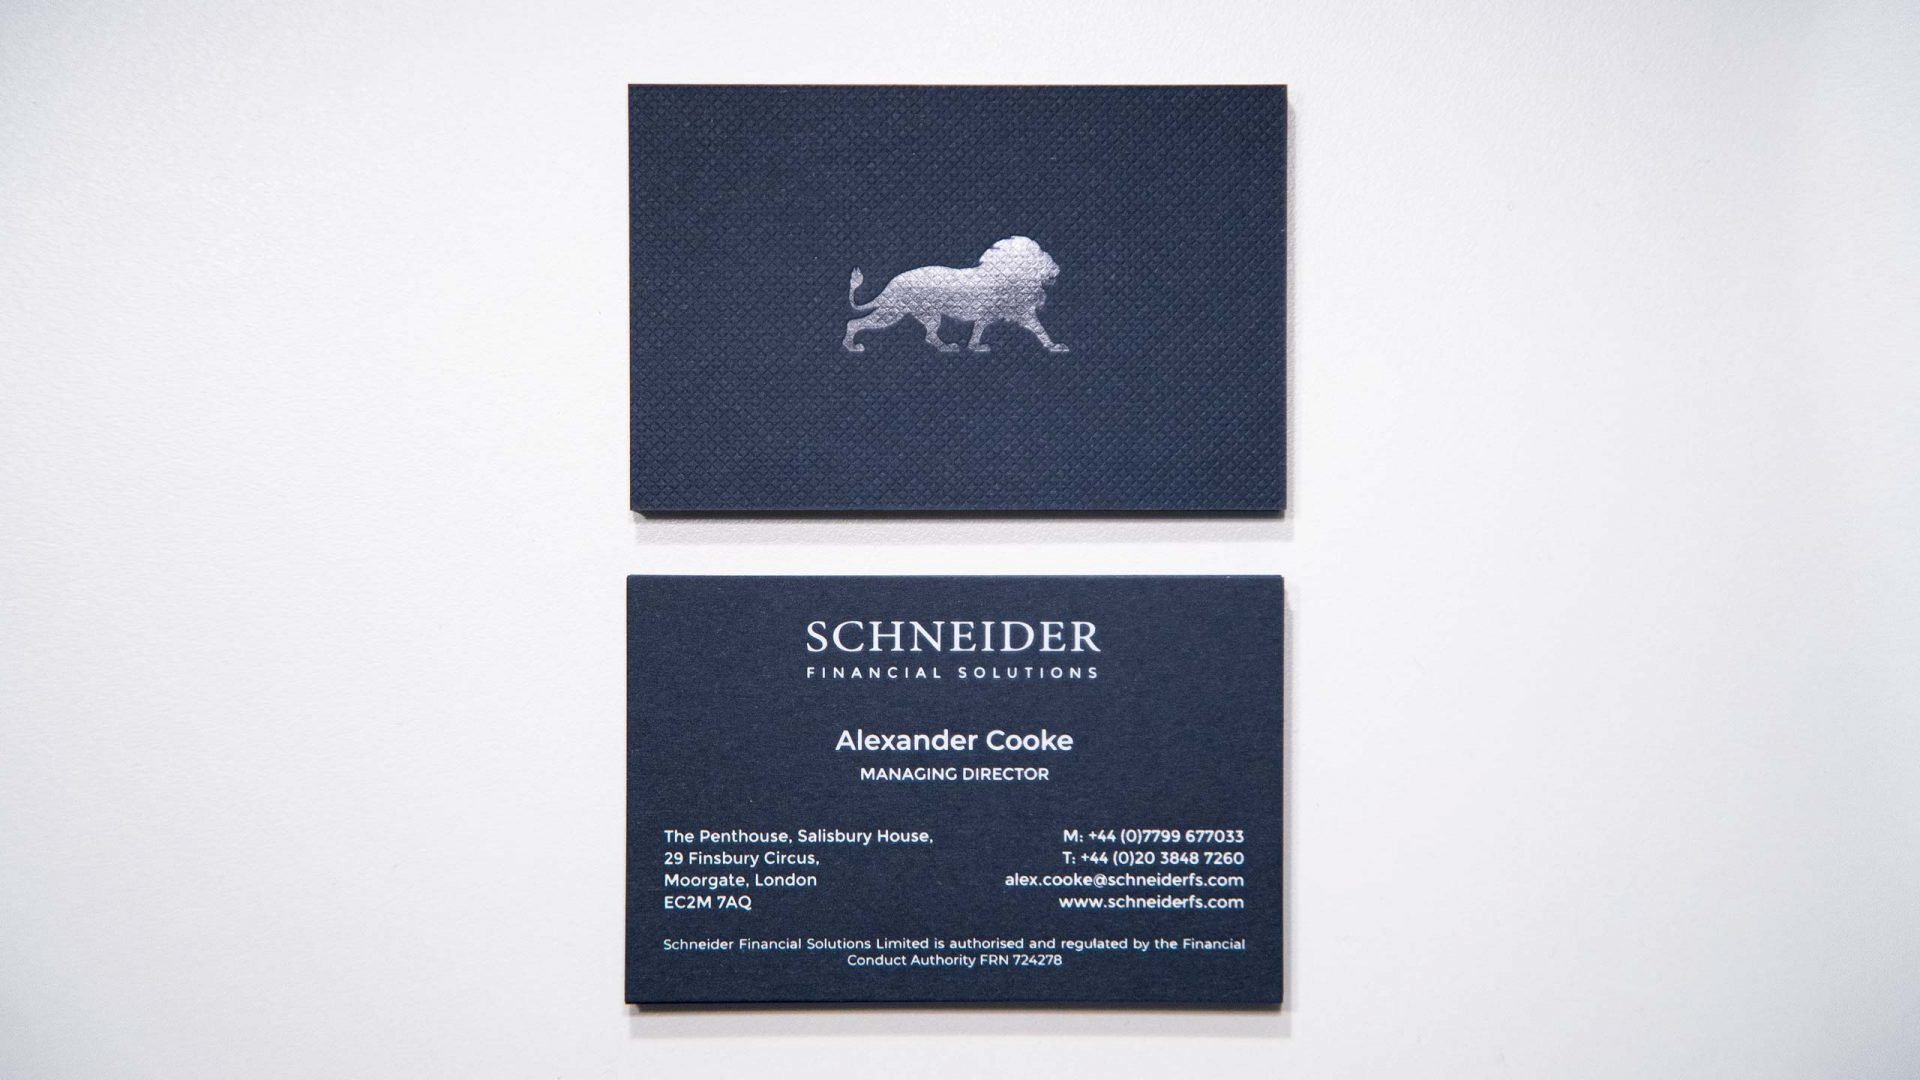 Crate47 Schneider Financial Services rebranding and website design - Business Card design 2